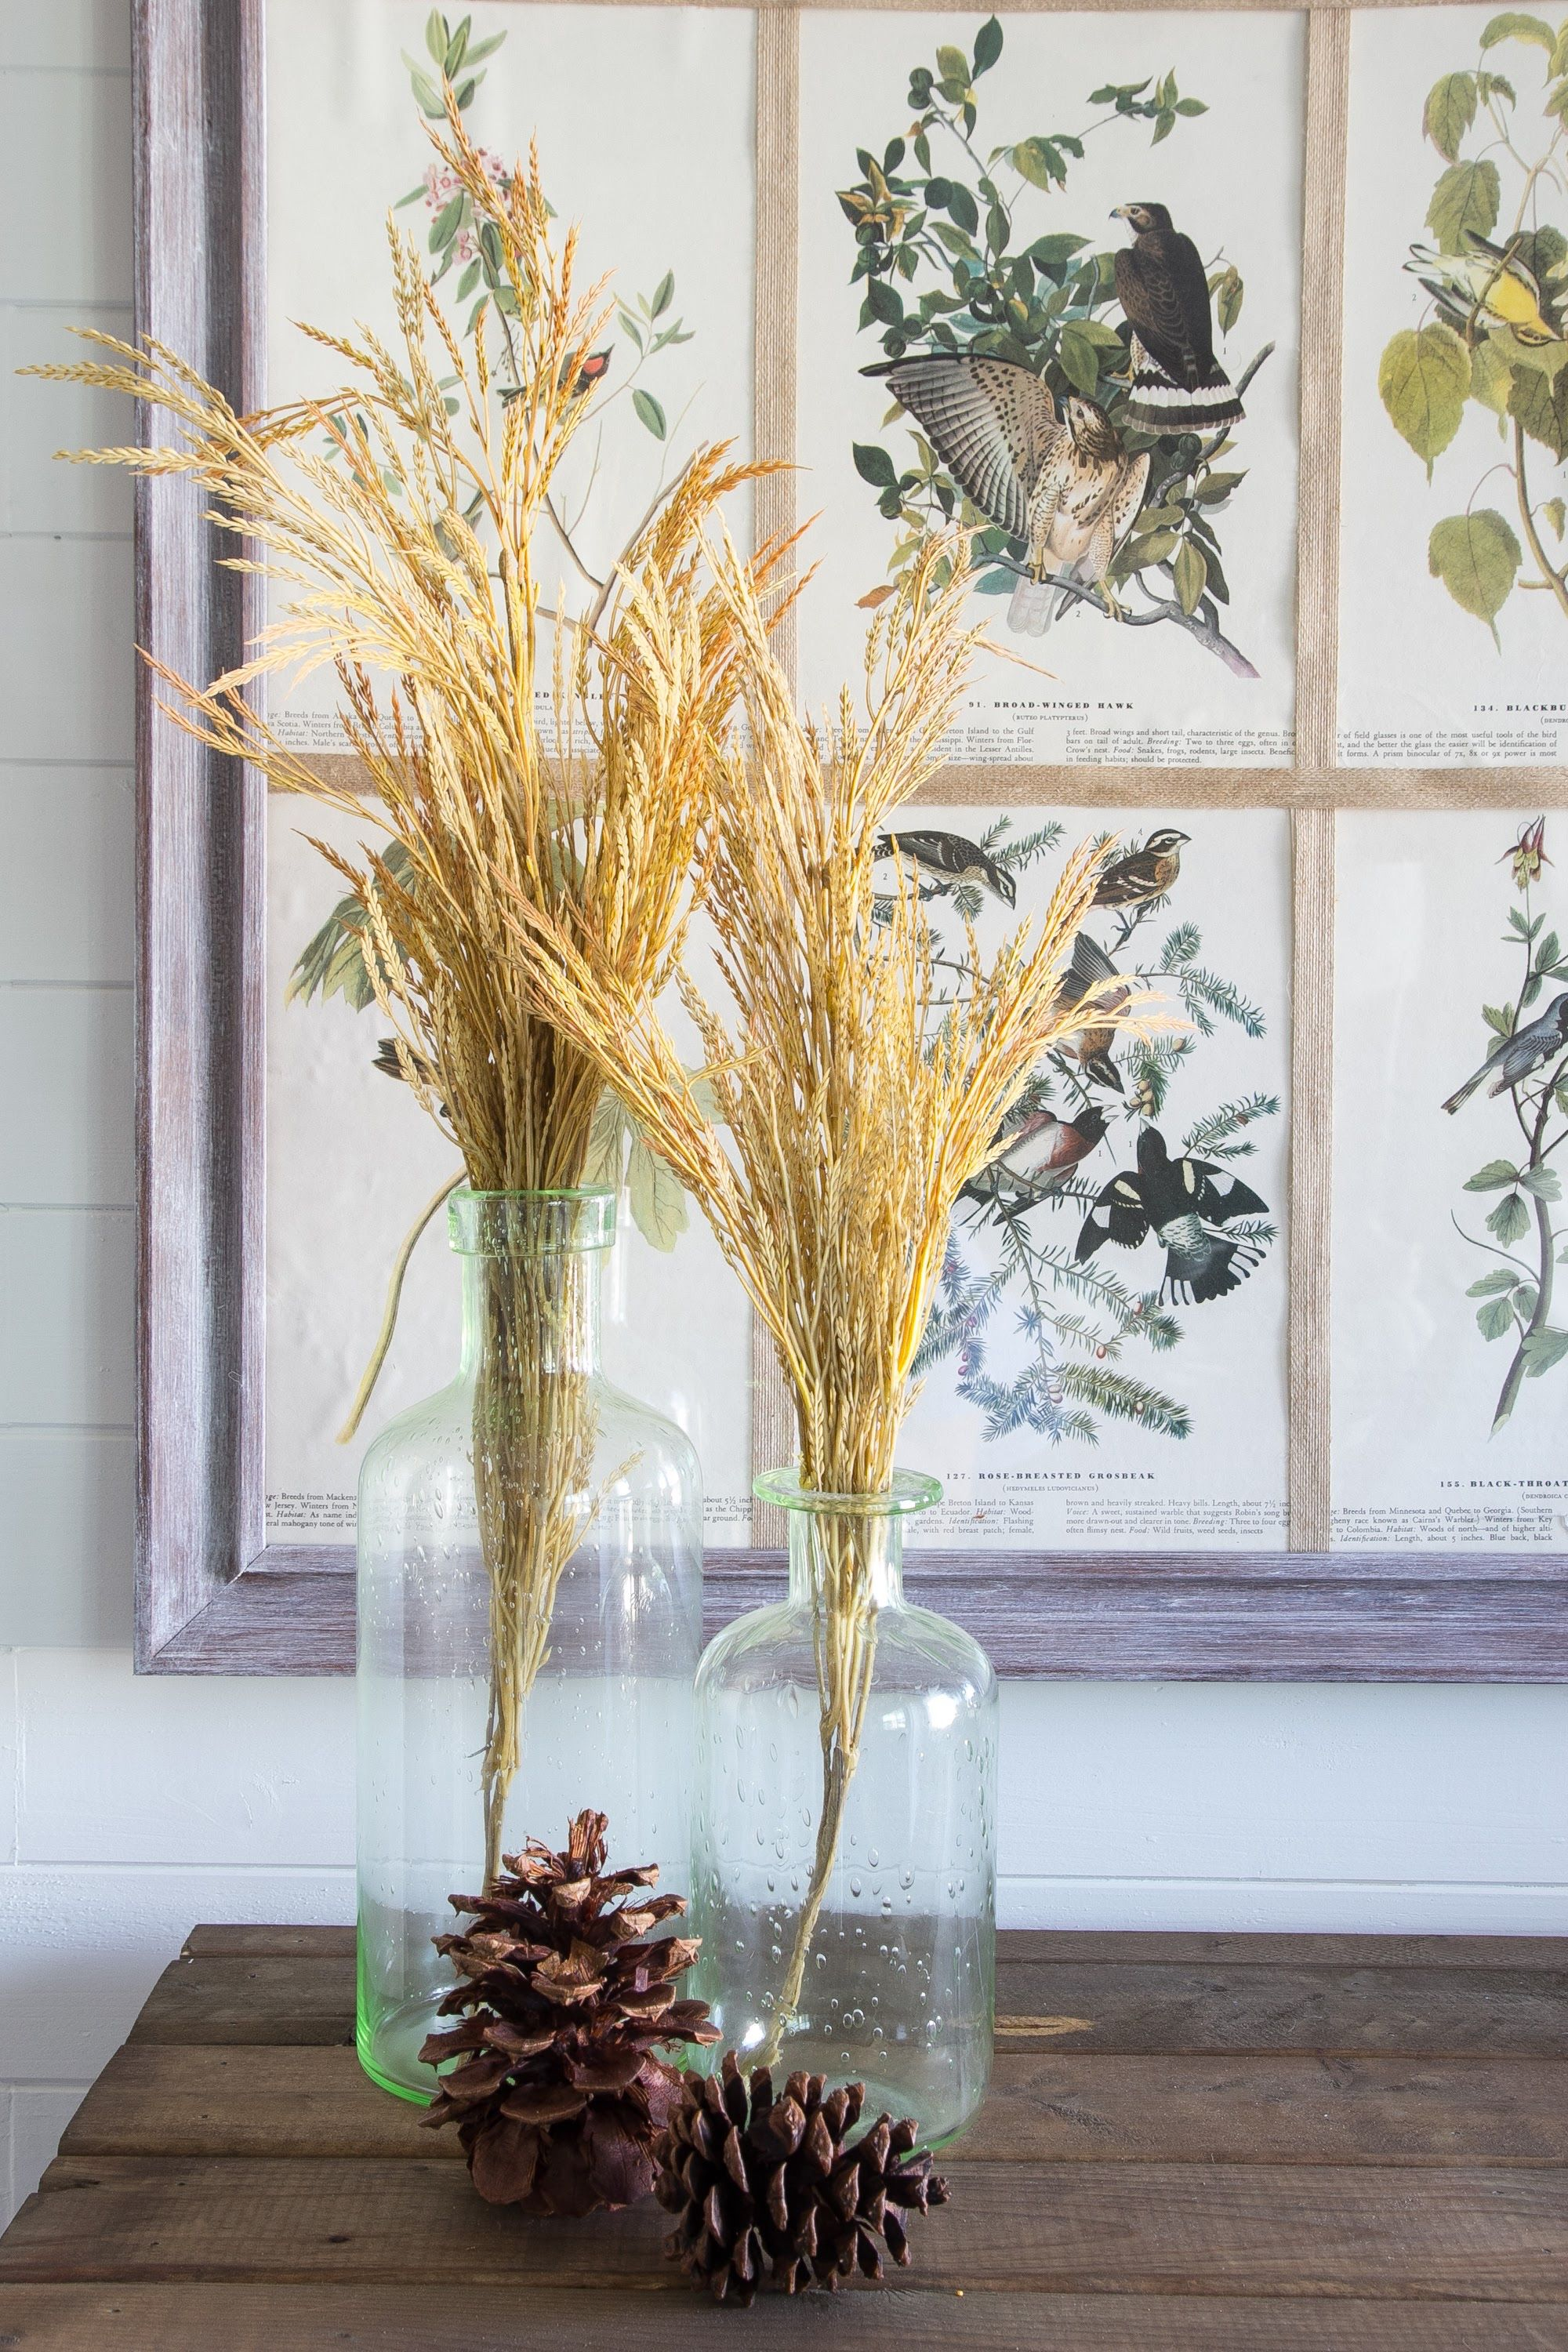 22 Beautiful Nut And Acorn Wreaths For Natural Fall Decor ...